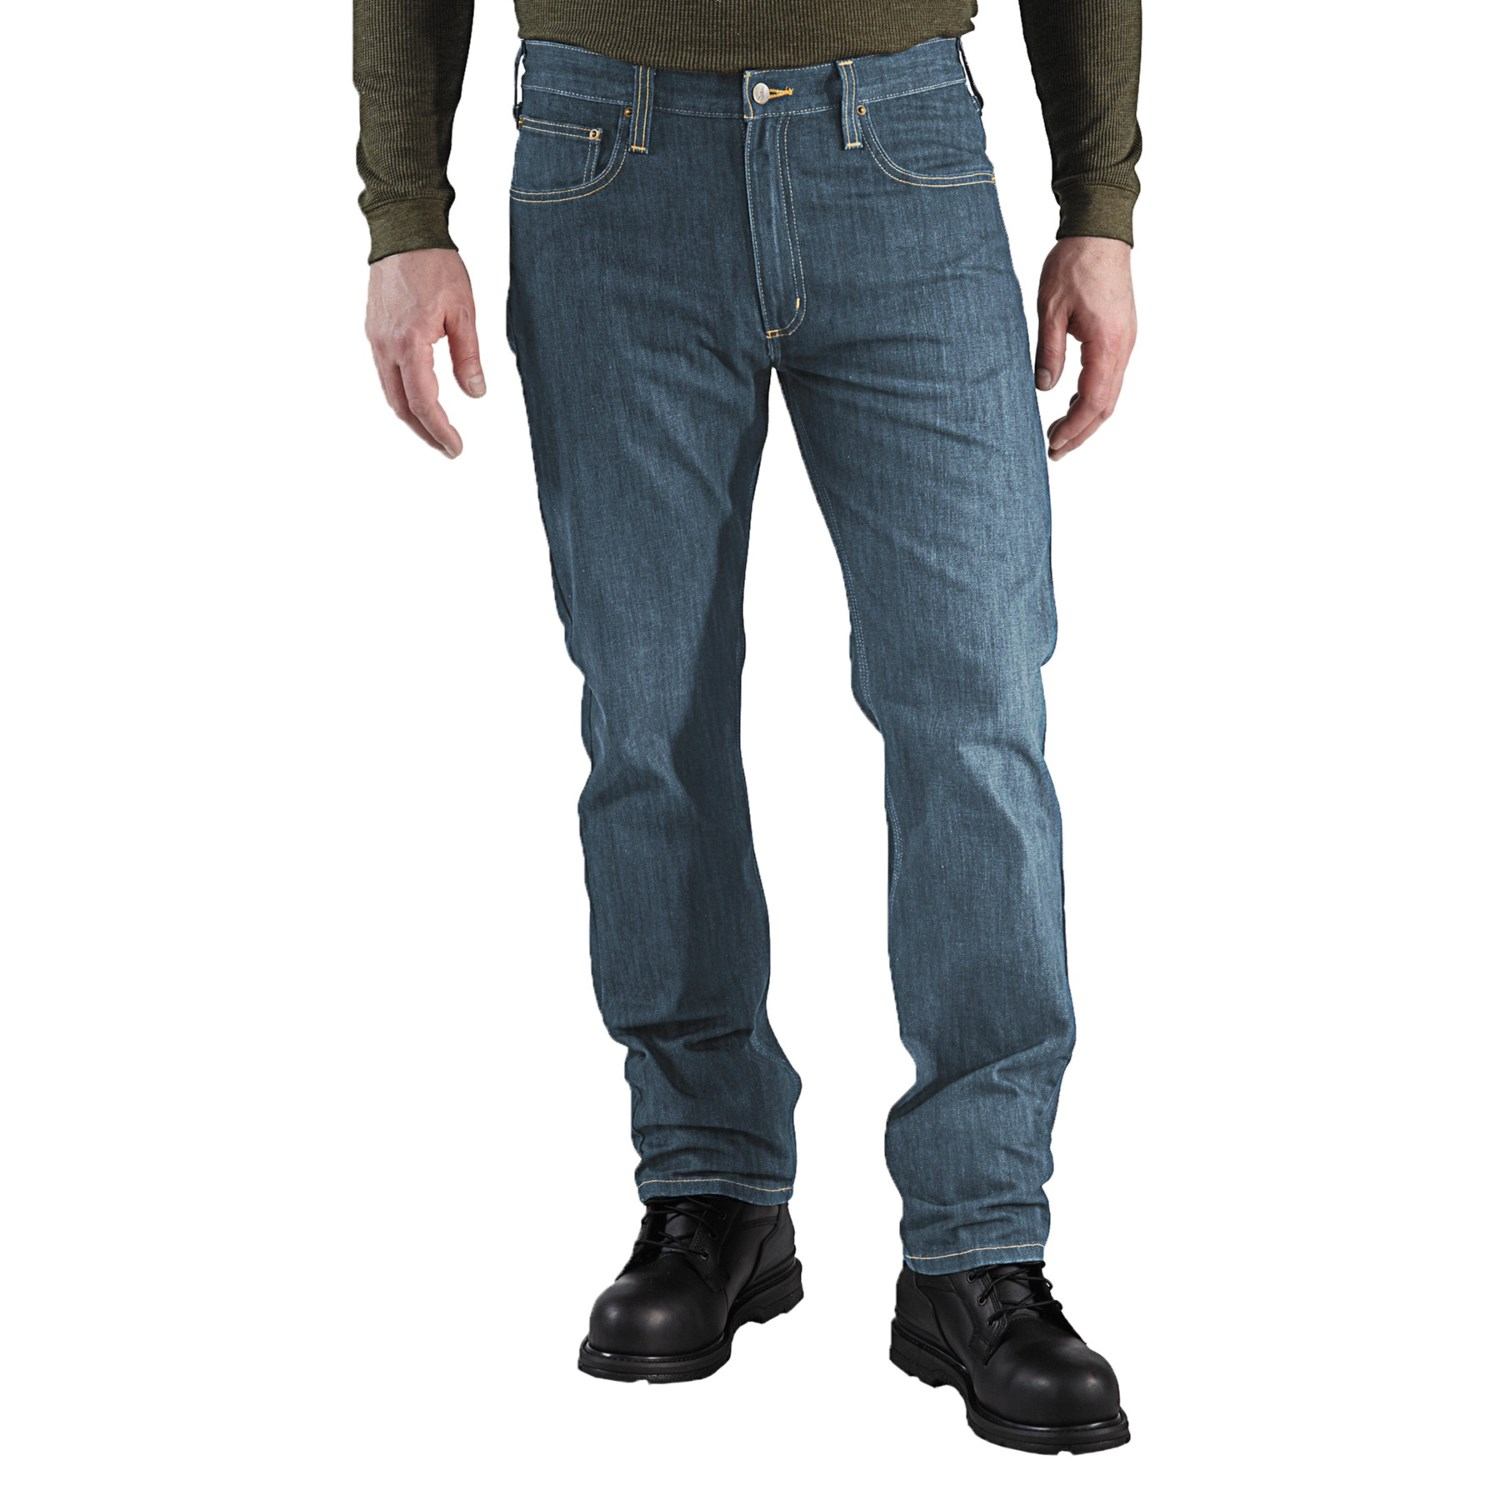 FREE SHIPPING AVAILABLE! Shop nirtsnom.tk and save on Straight Fit Jeans.